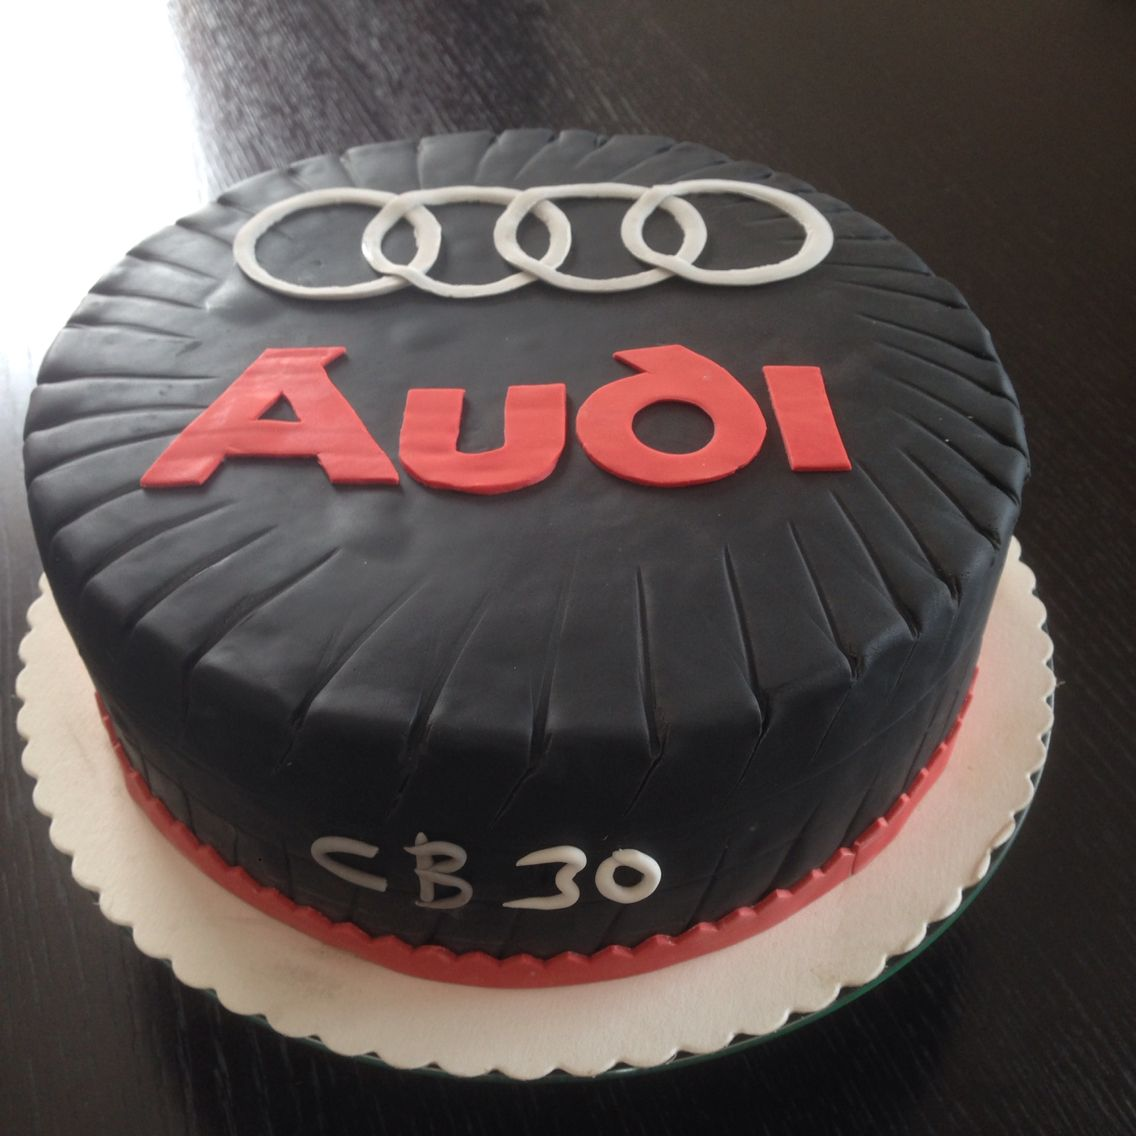 audi cake my own cakes pinterest auto kuchen torte. Black Bedroom Furniture Sets. Home Design Ideas